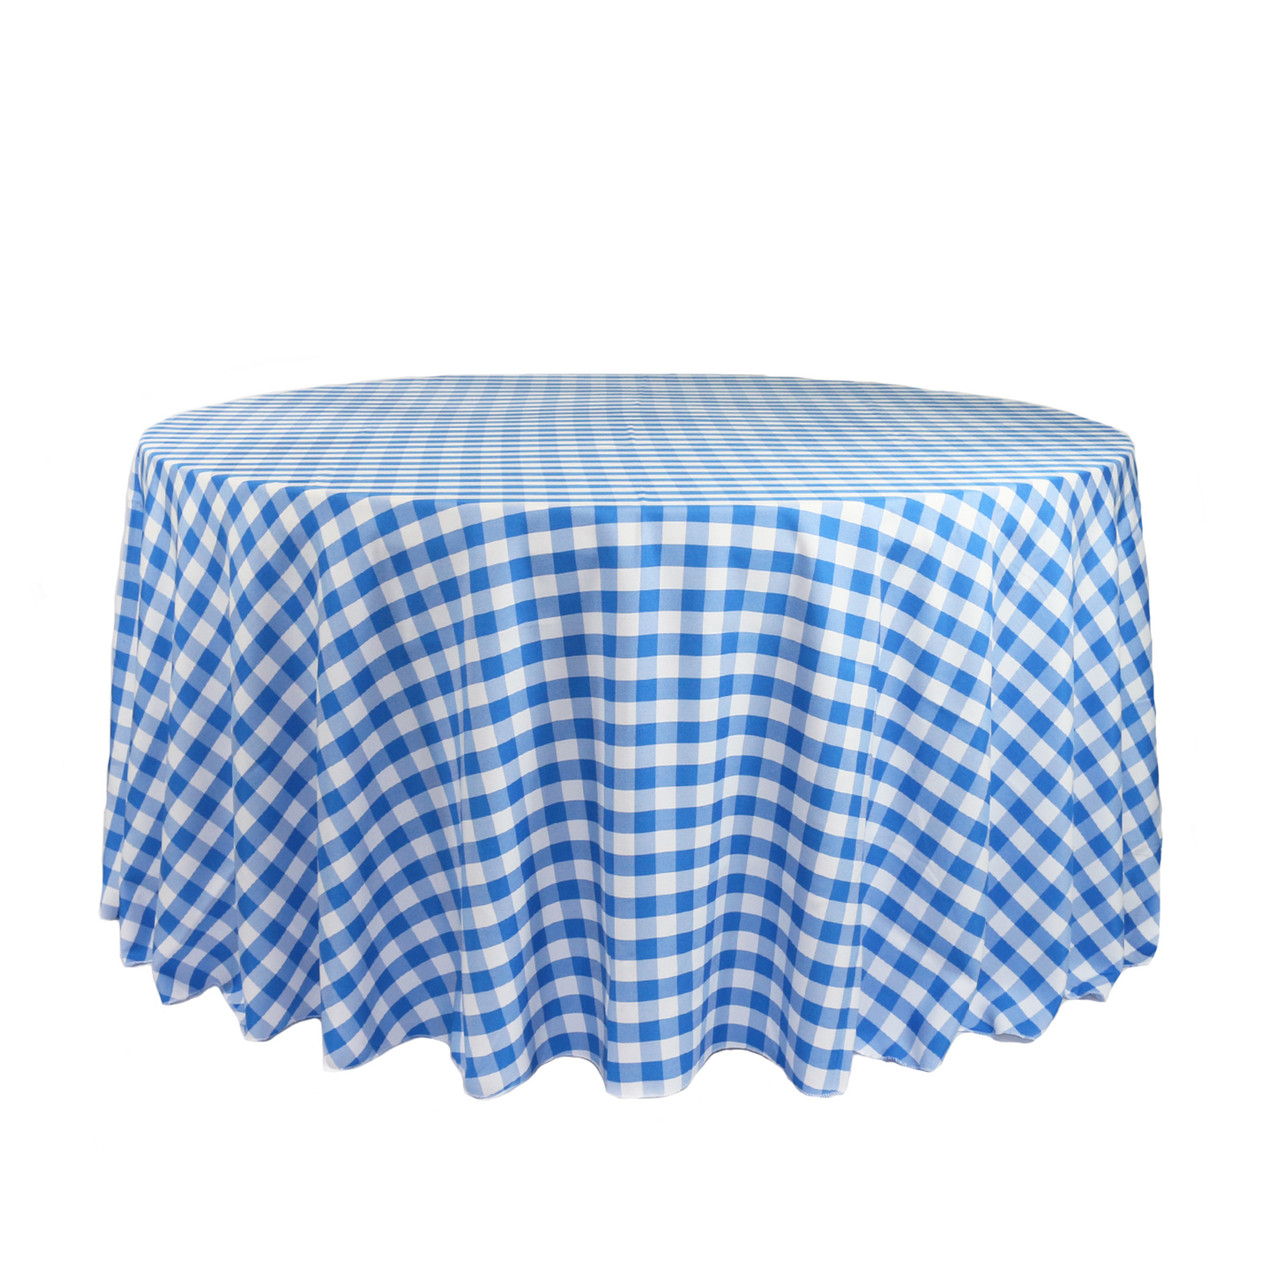 120 Inch Round Polyester Tablecloth Gingham Checkered Royal Blue Your Chair Covers Inc